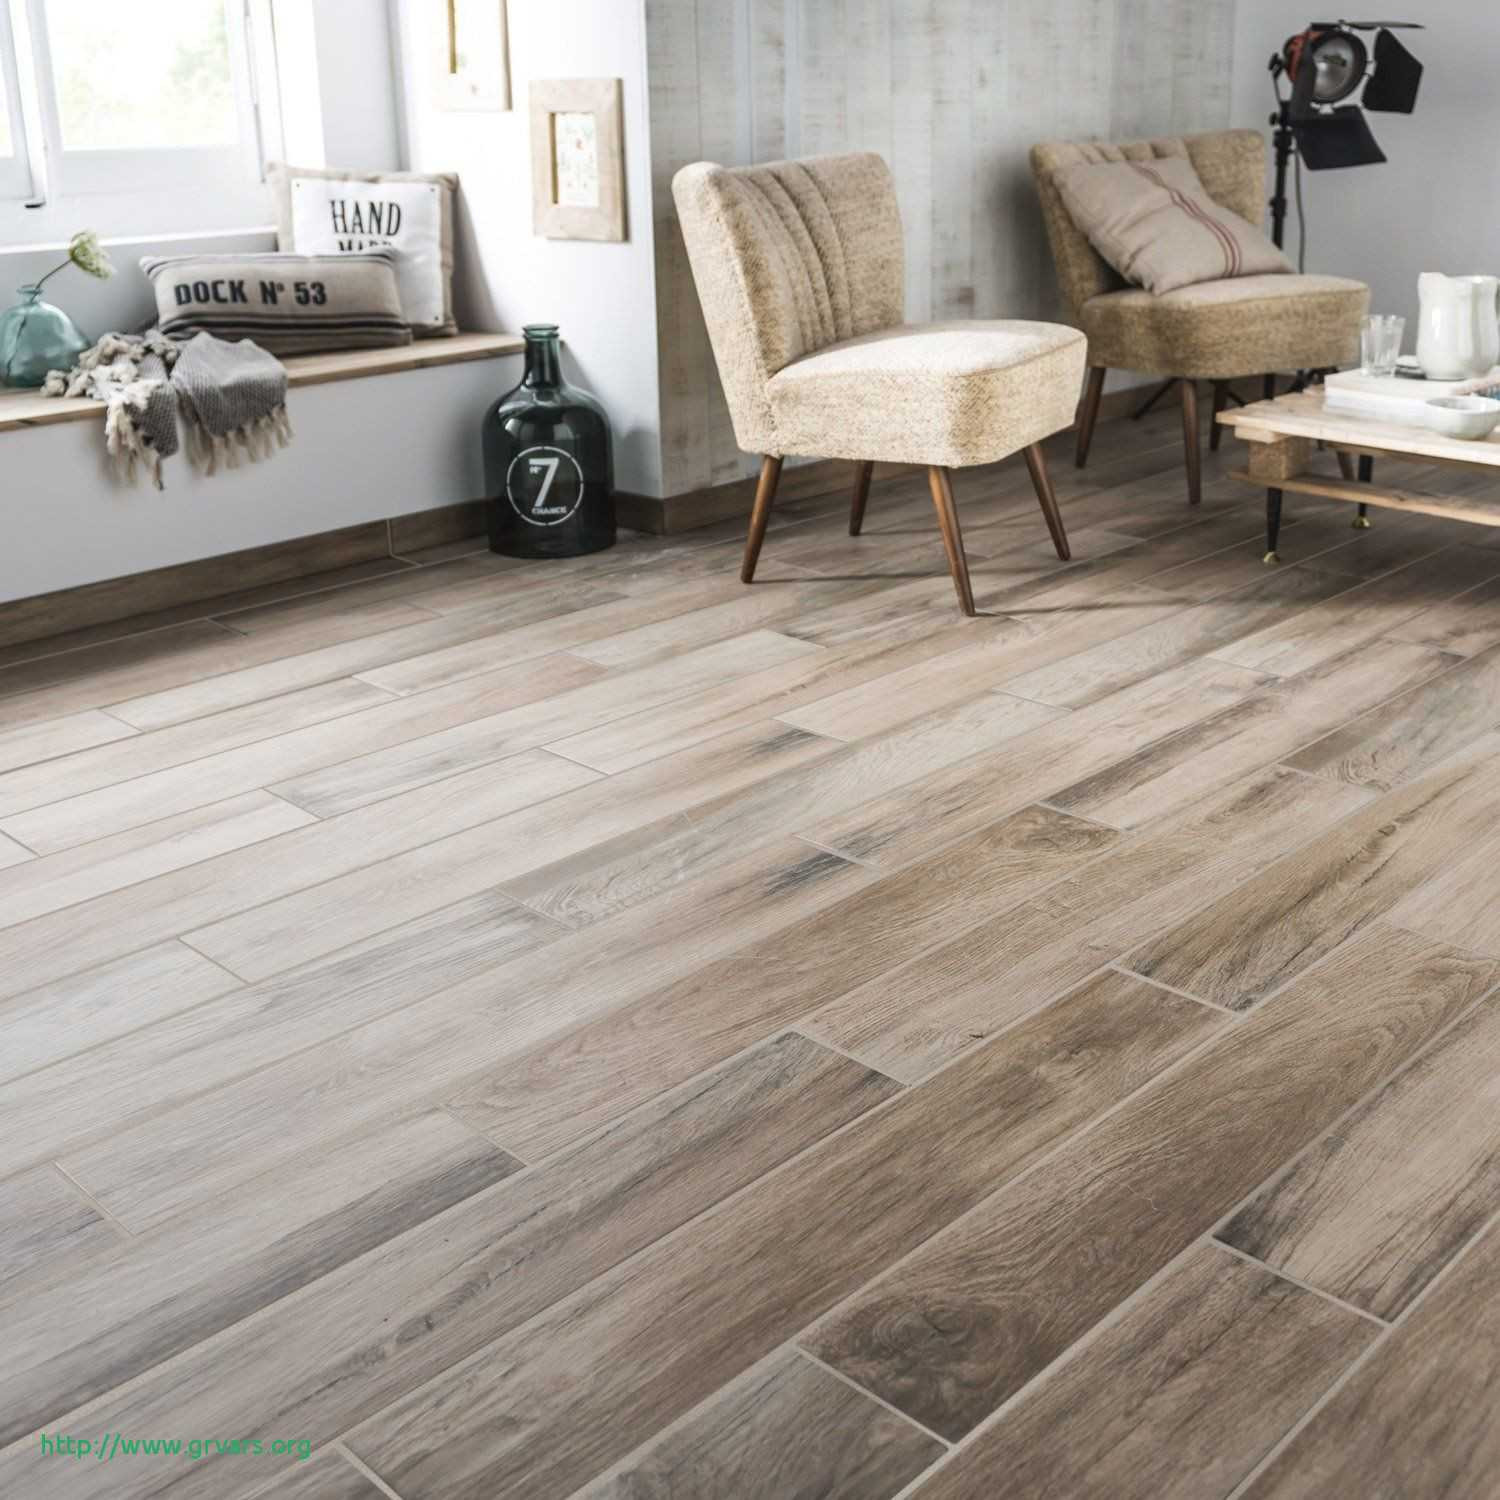 after sanding hardwood floors of hazy hardwood floors luxe flooring near me flooring sale near me for hazy hardwood floors charmant parquet wood flooring parquet floor sanding and polished following